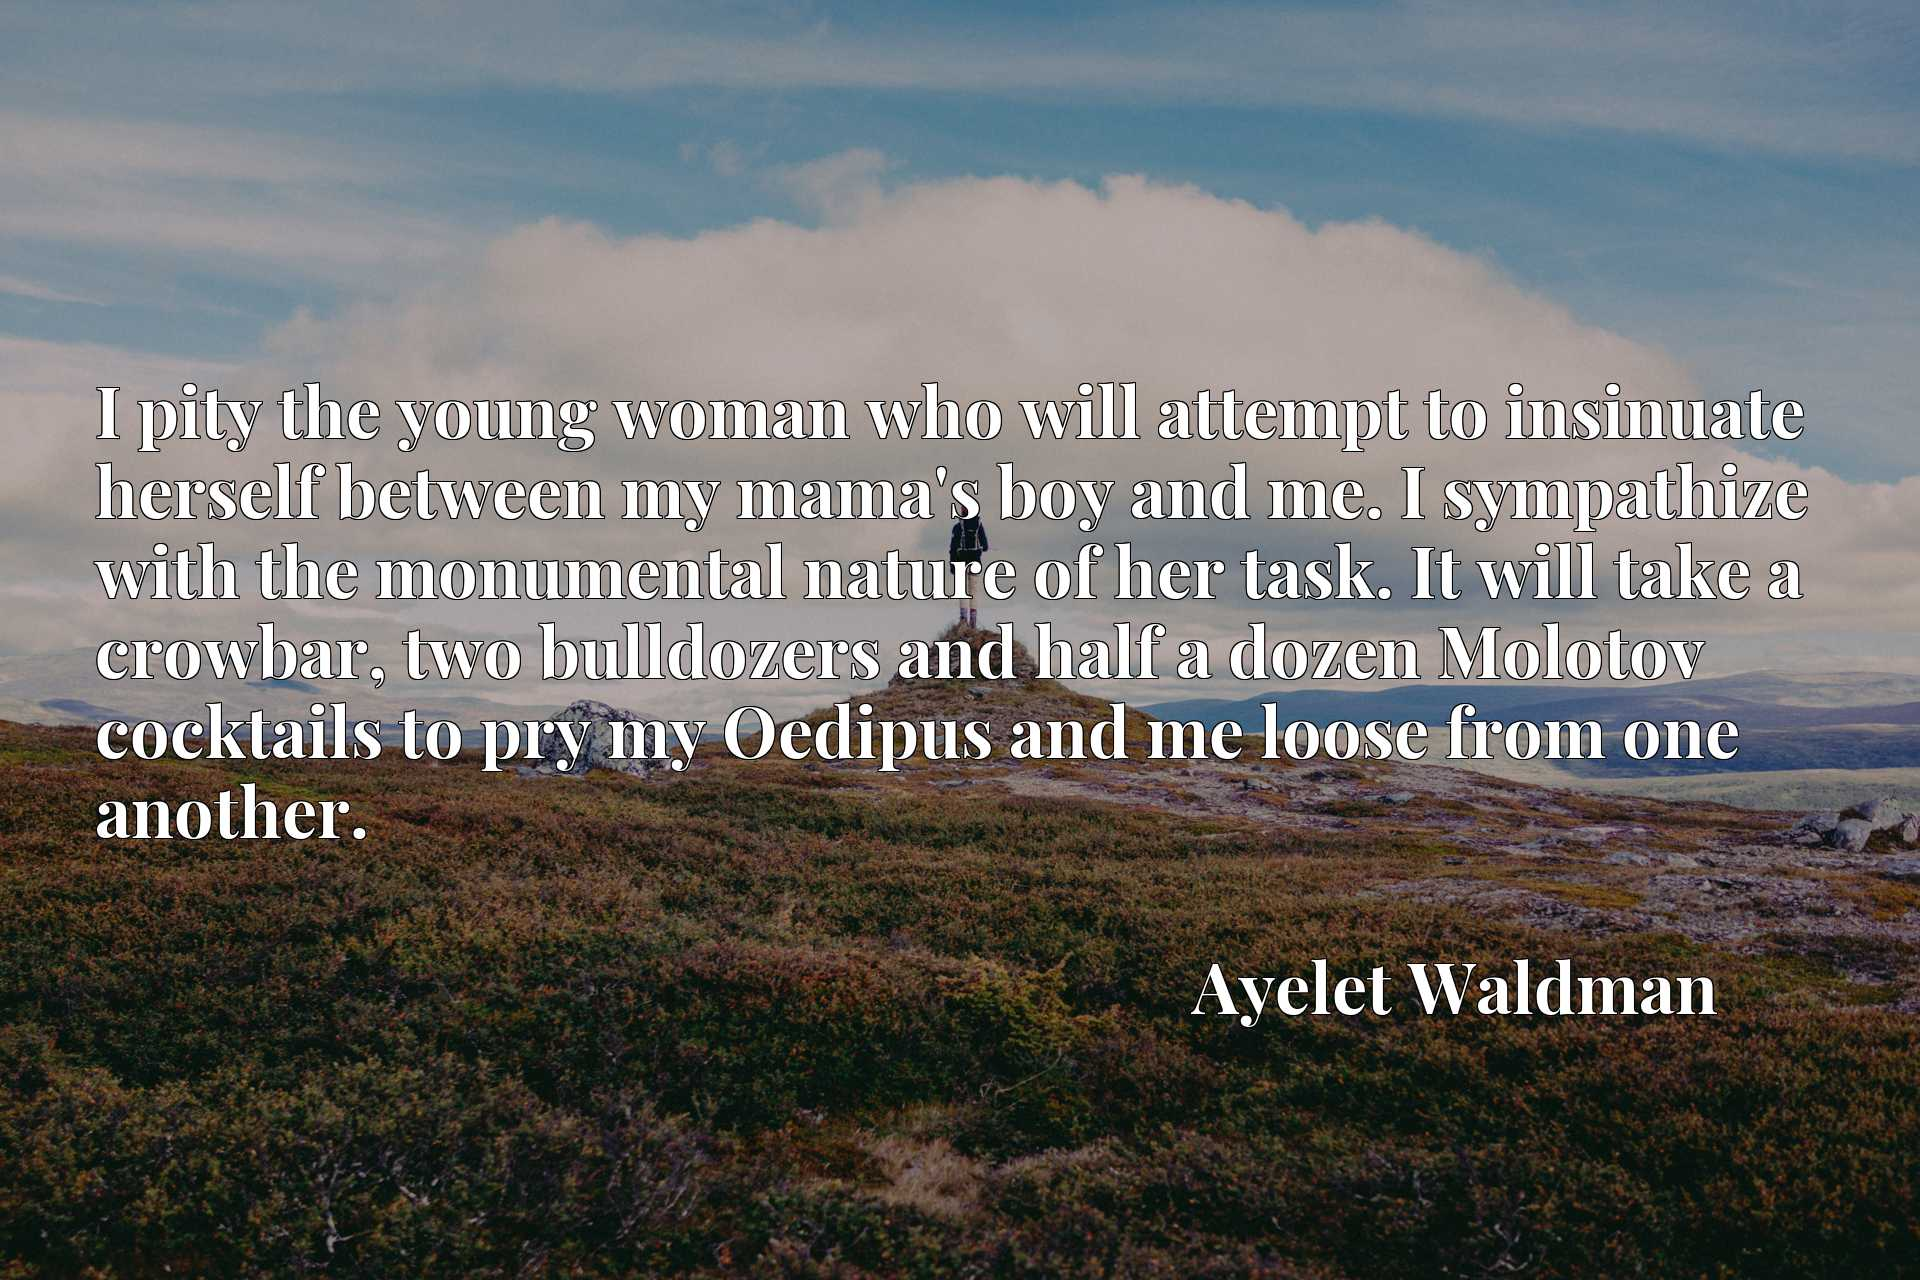 Quote Picture :I pity the young woman who will attempt to insinuate herself between my mama's boy and me. I sympathize with the monumental nature of her task. It will take a crowbar, two bulldozers and half a dozen Molotov cocktails to pry my Oedipus and me loose from one another.